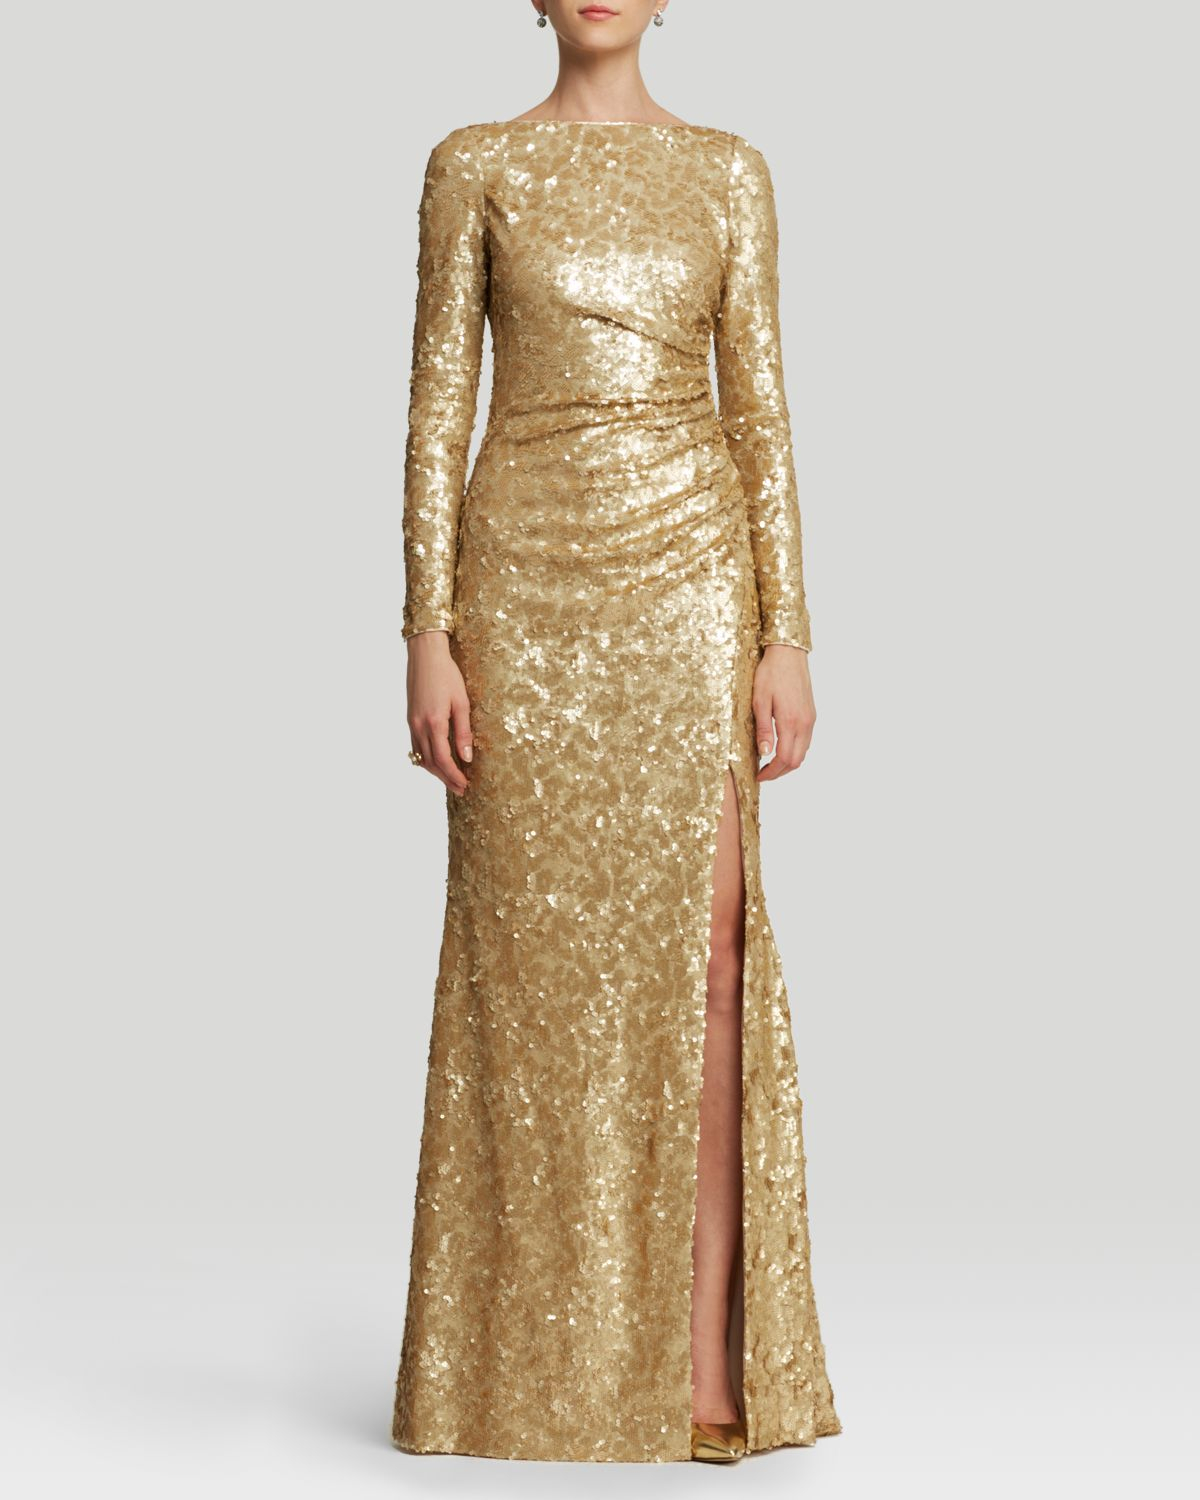 Lyst - Badgley Mischka Gown - Sequin in Metallic